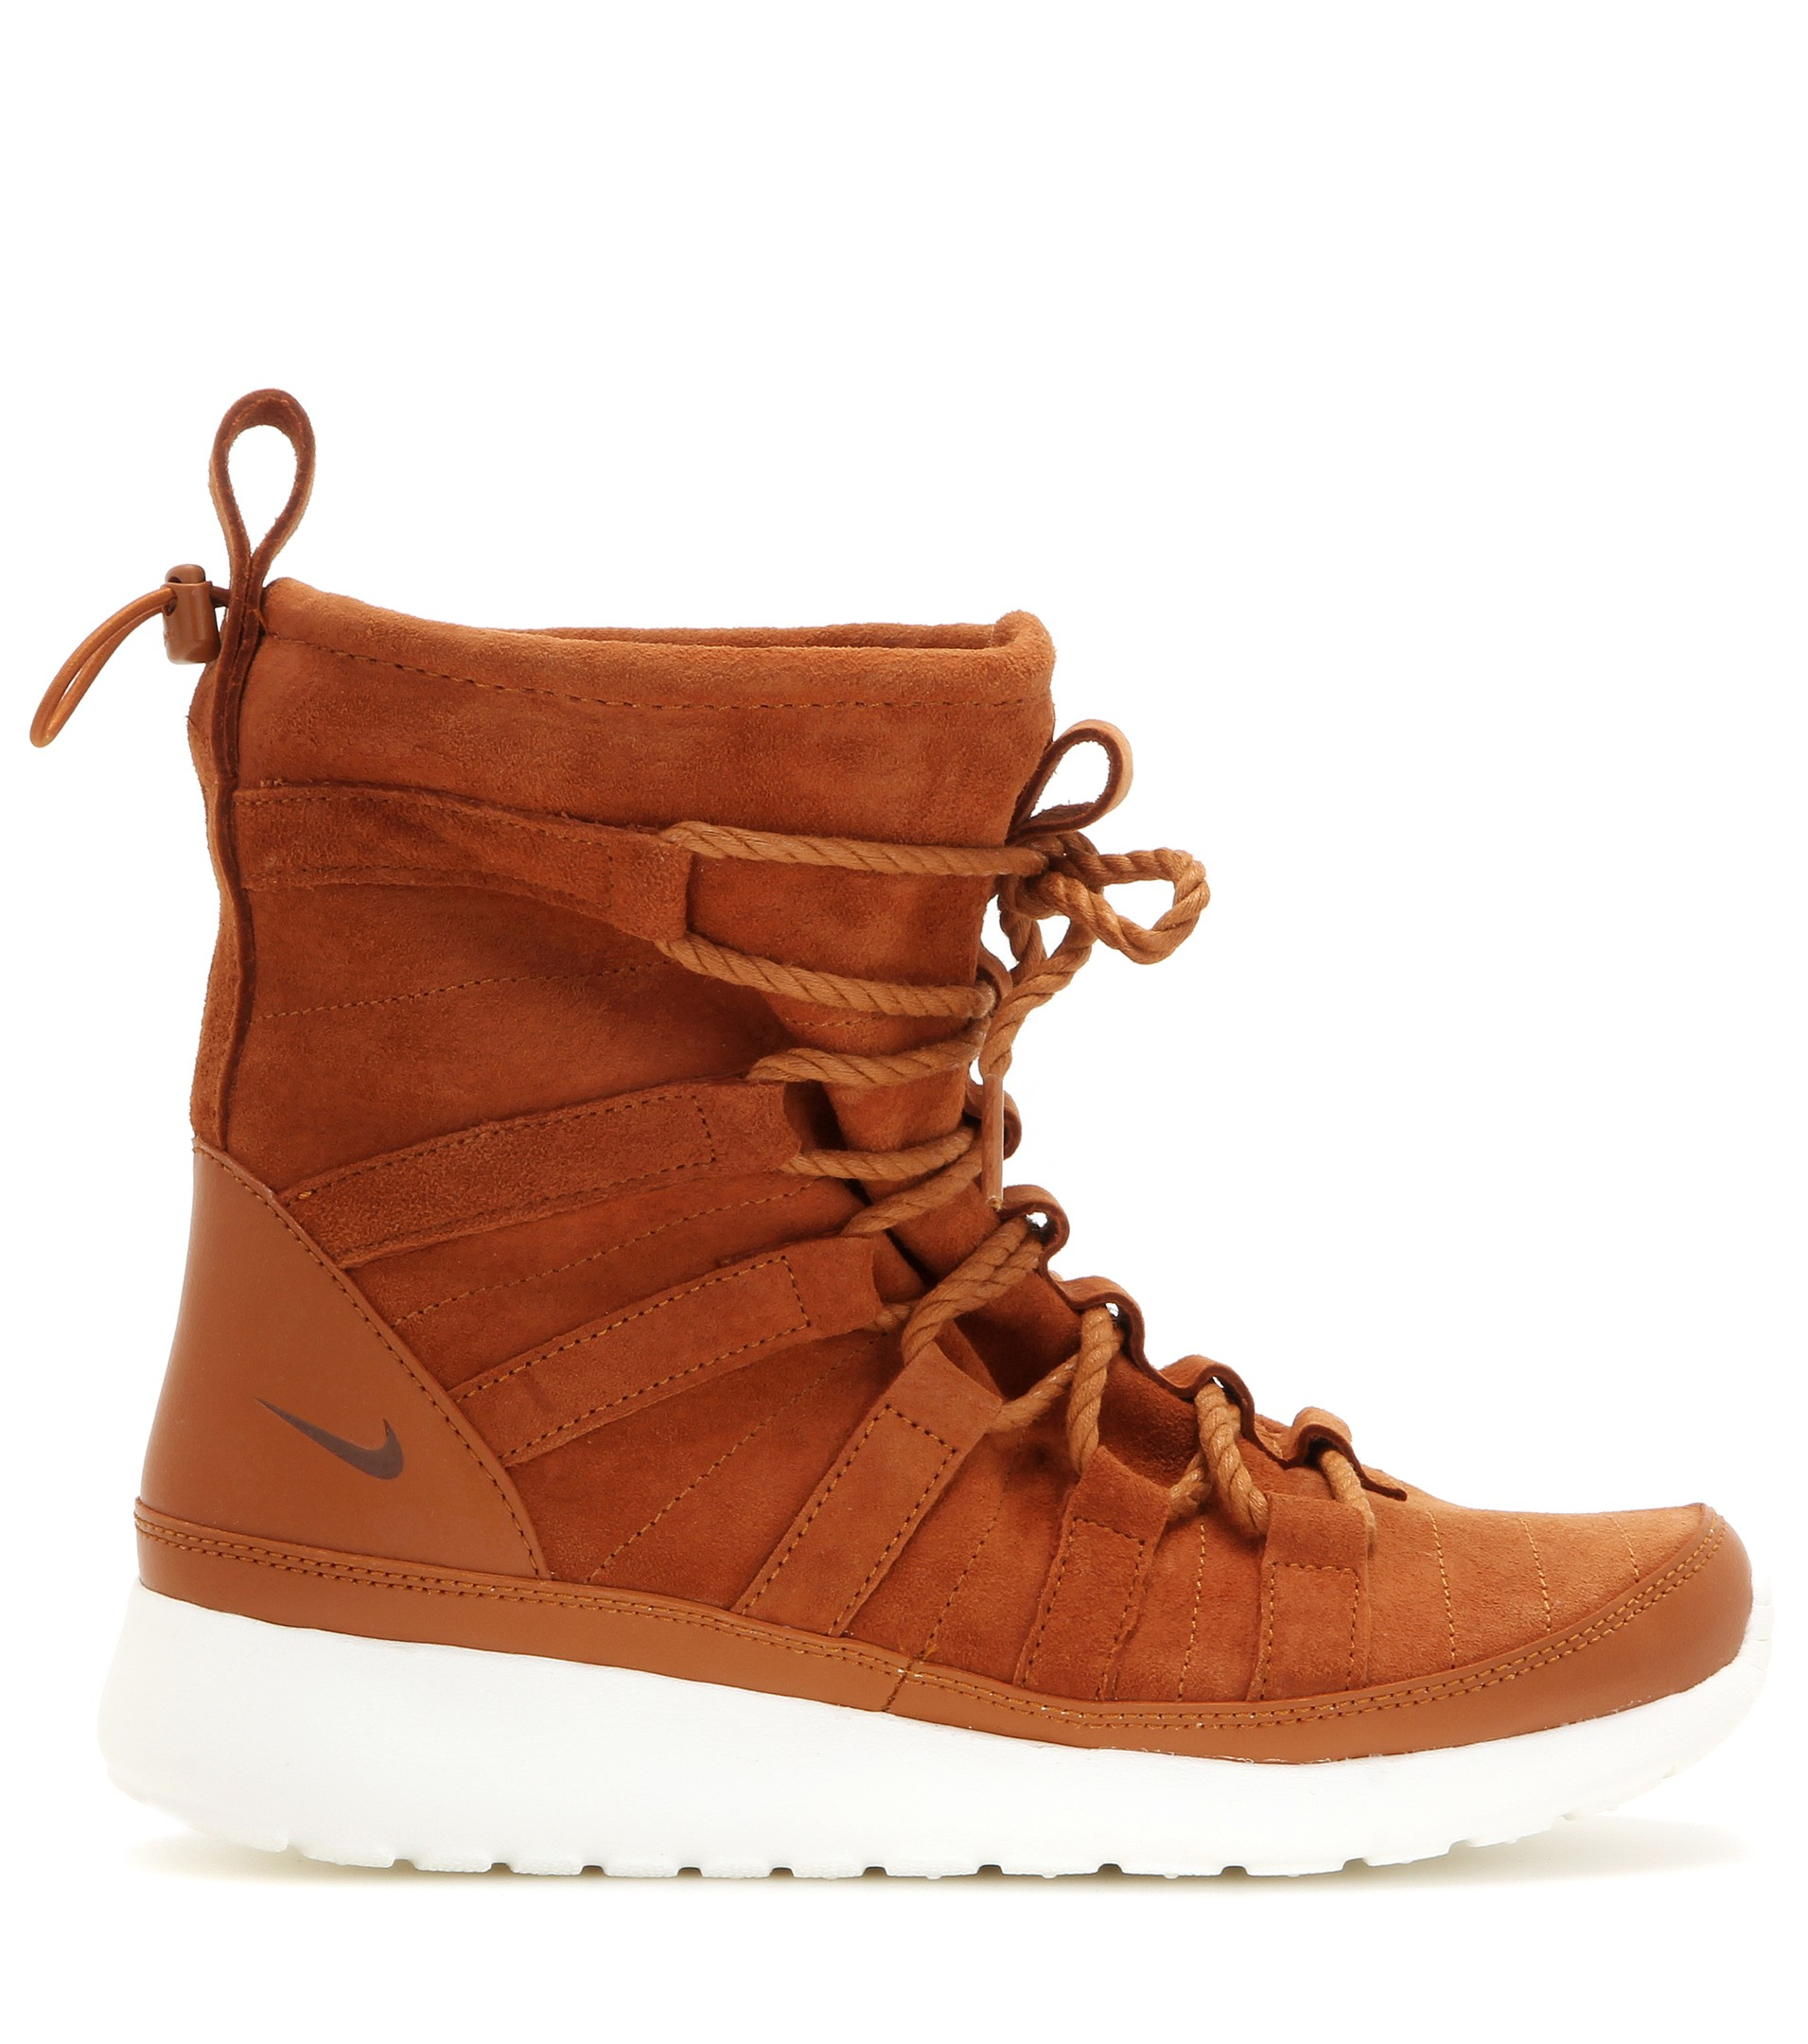 low price a3251 3bacb Nike Roshe One Hi Suede Sneaker Boots in Brown - Lyst